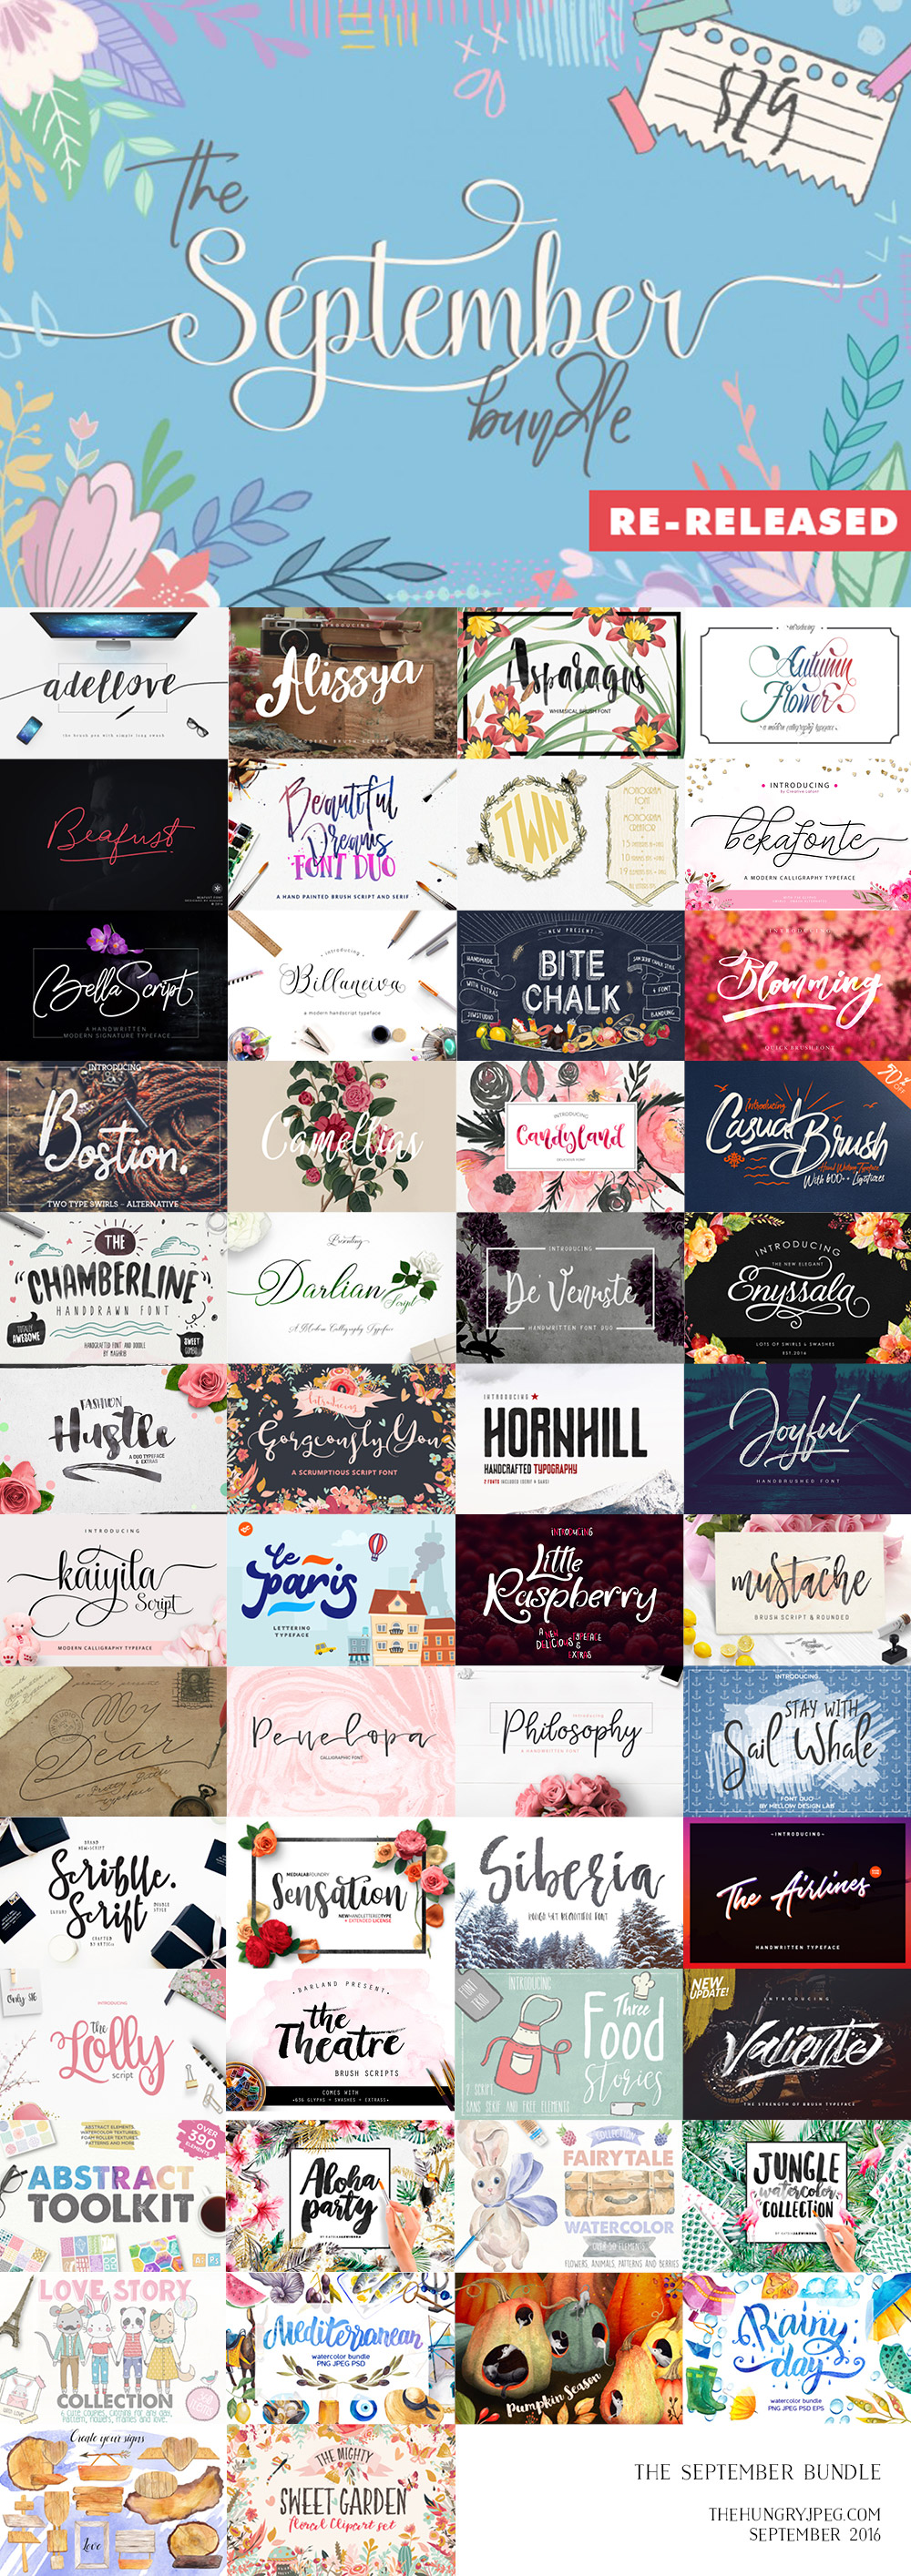 The September Fonts & Graphics Bundle